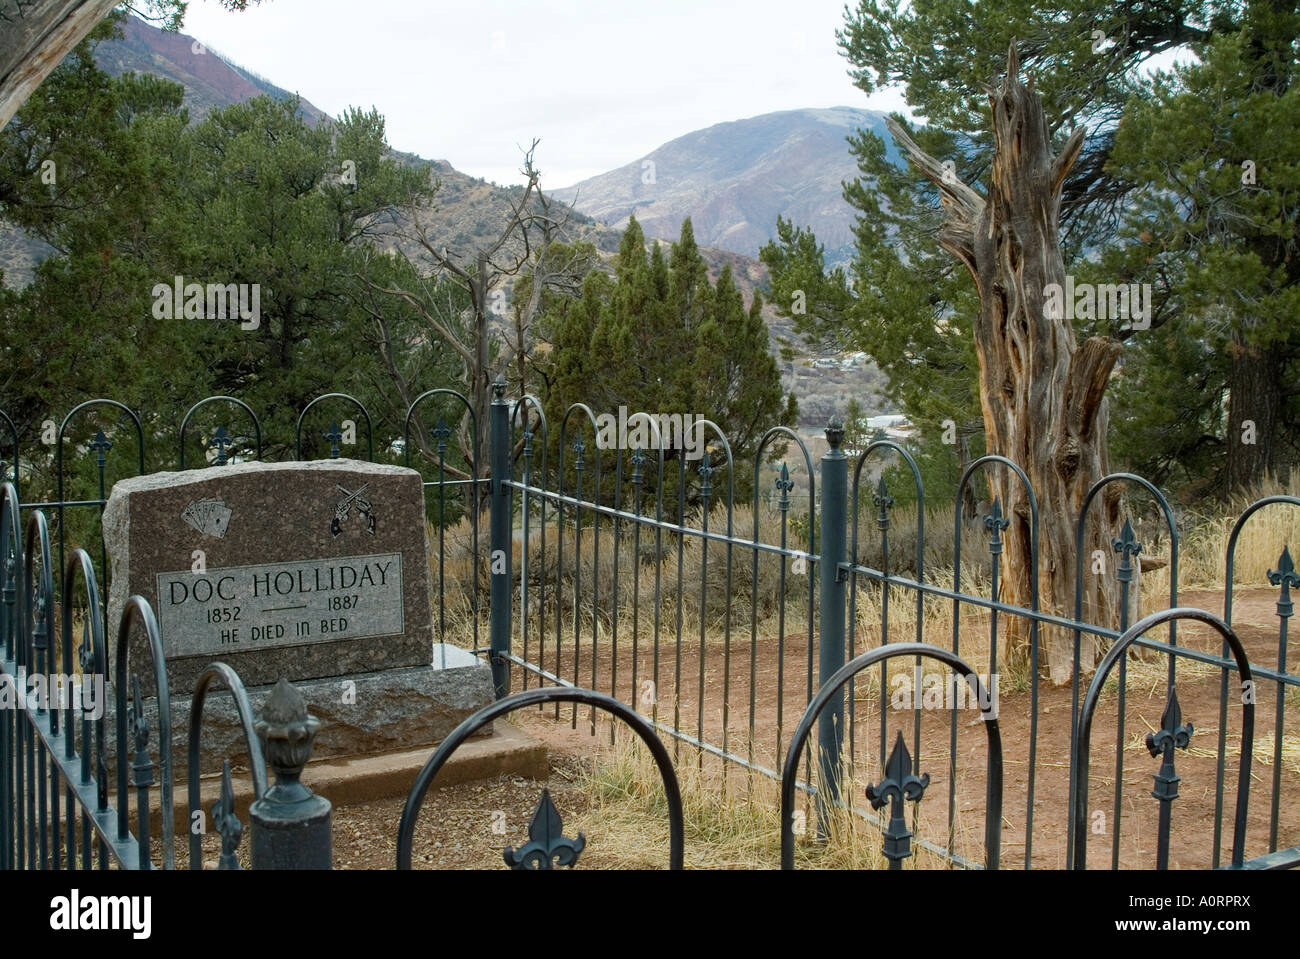 Doc Holliday s Grave Glenwood Springs Colorado United States of America North America - Stock Image